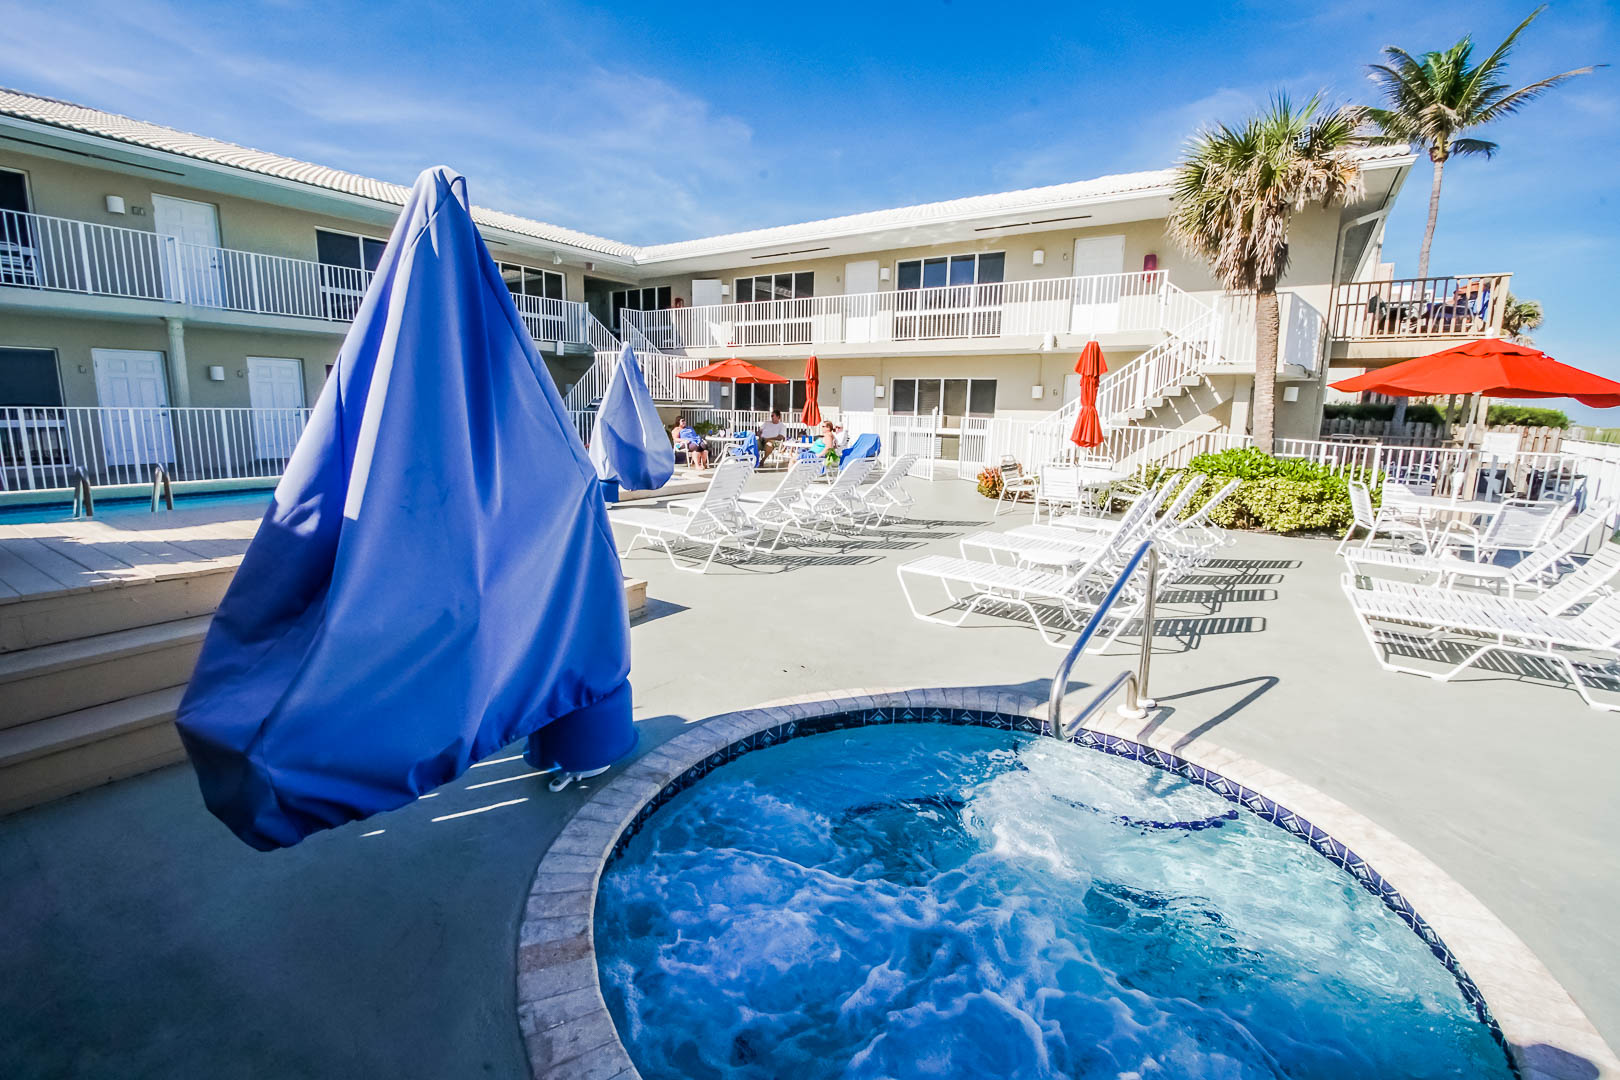 A relaxing jacuzzi tub with VRI's Berkshire Beach Club in Florida